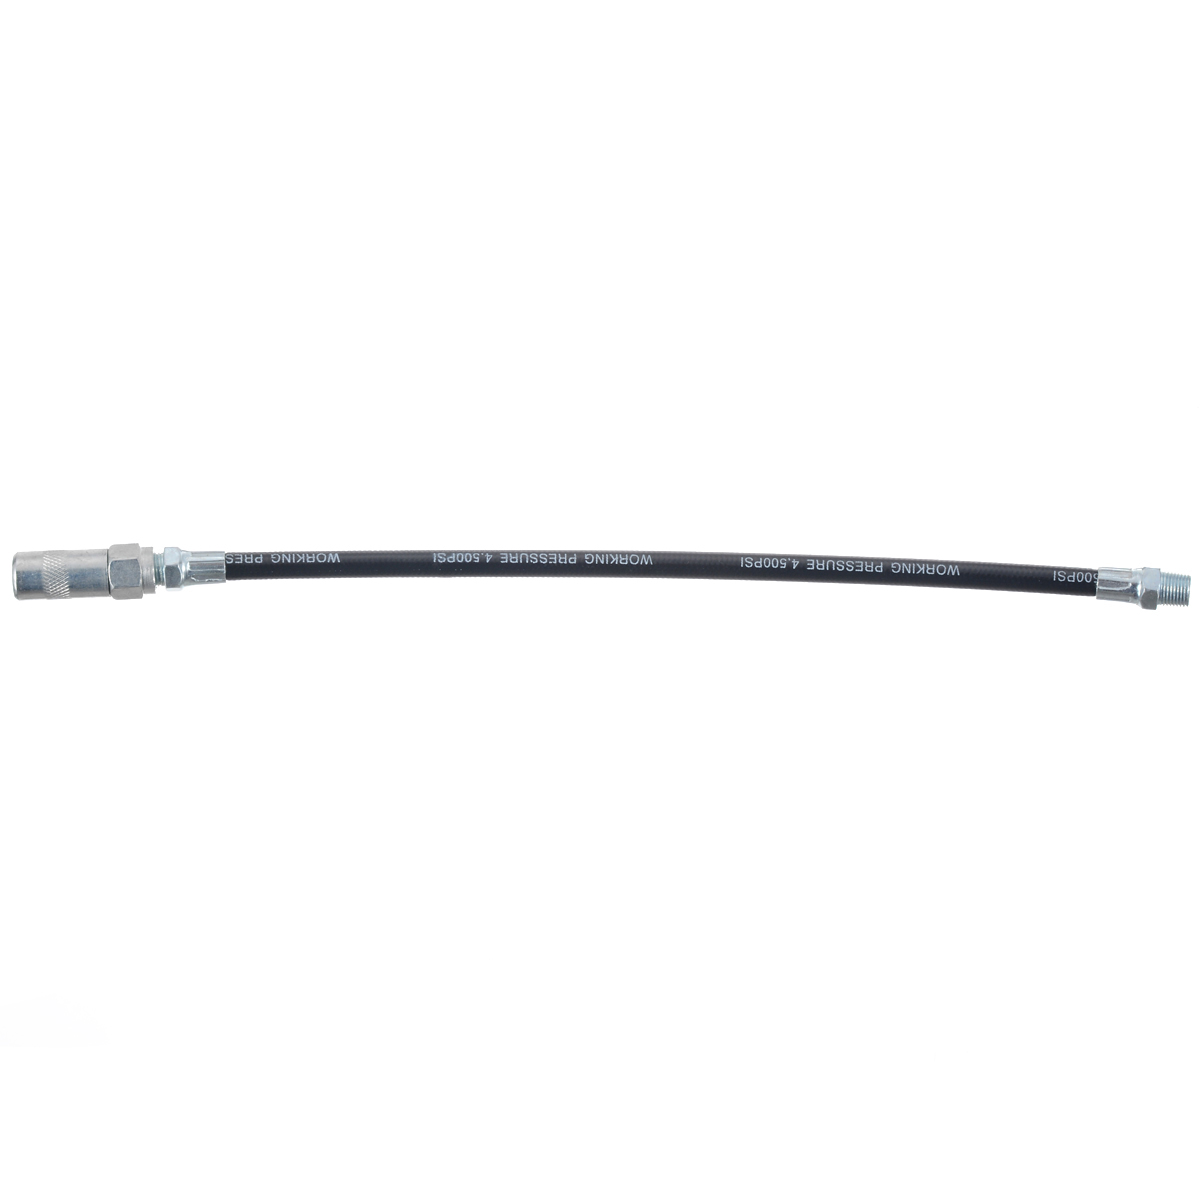 13 inch Heavy Duty High Pressure Long Extension Grease Gun Hoses Flexible Grease Pipe Hose For Grease Gun Fittings